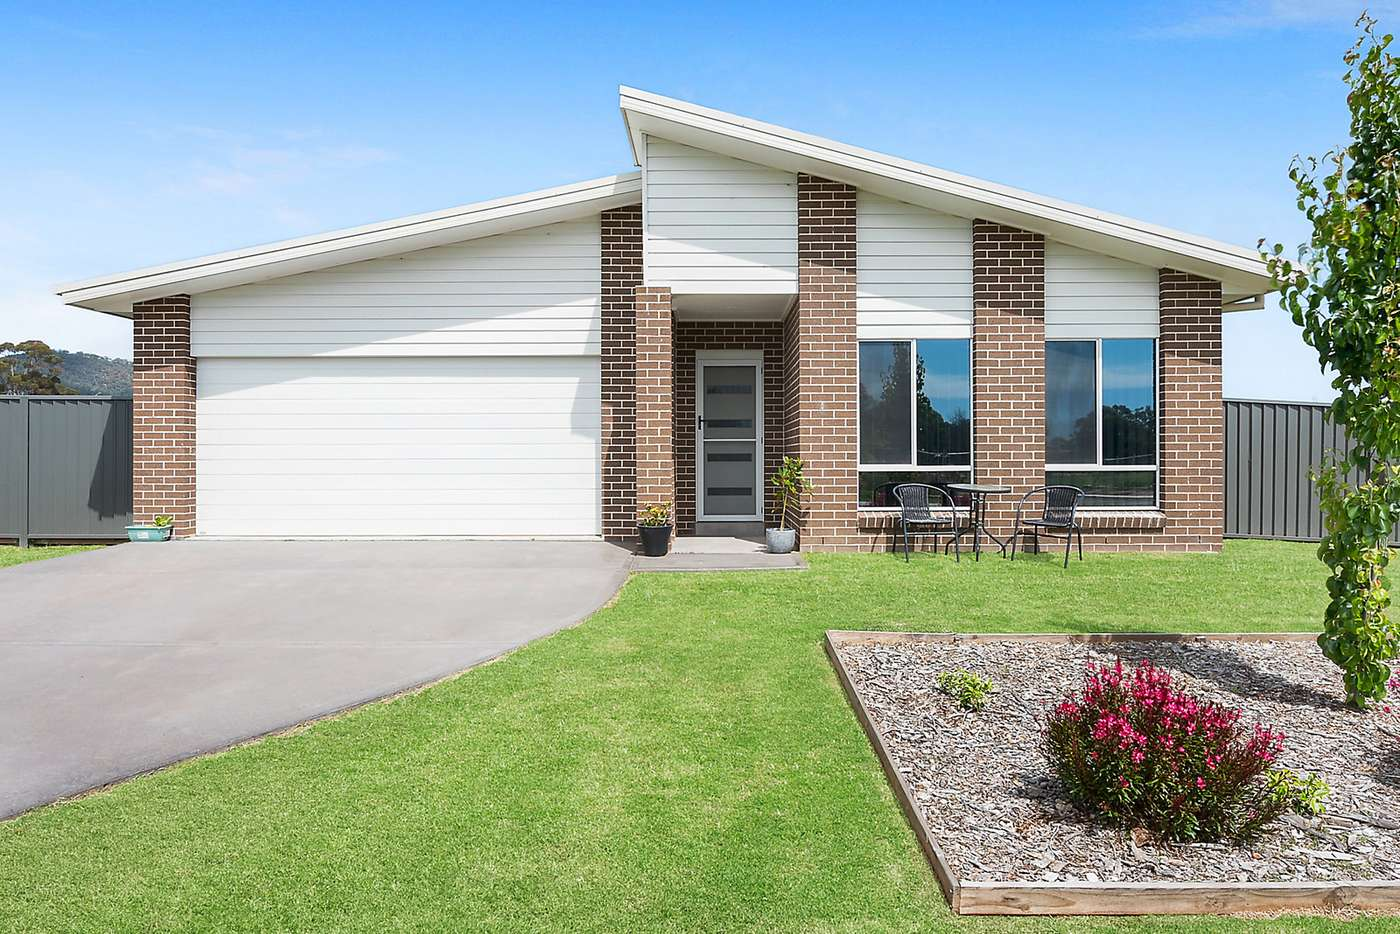 Main view of Homely house listing, 34 Knox Crescent, Mudgee NSW 2850